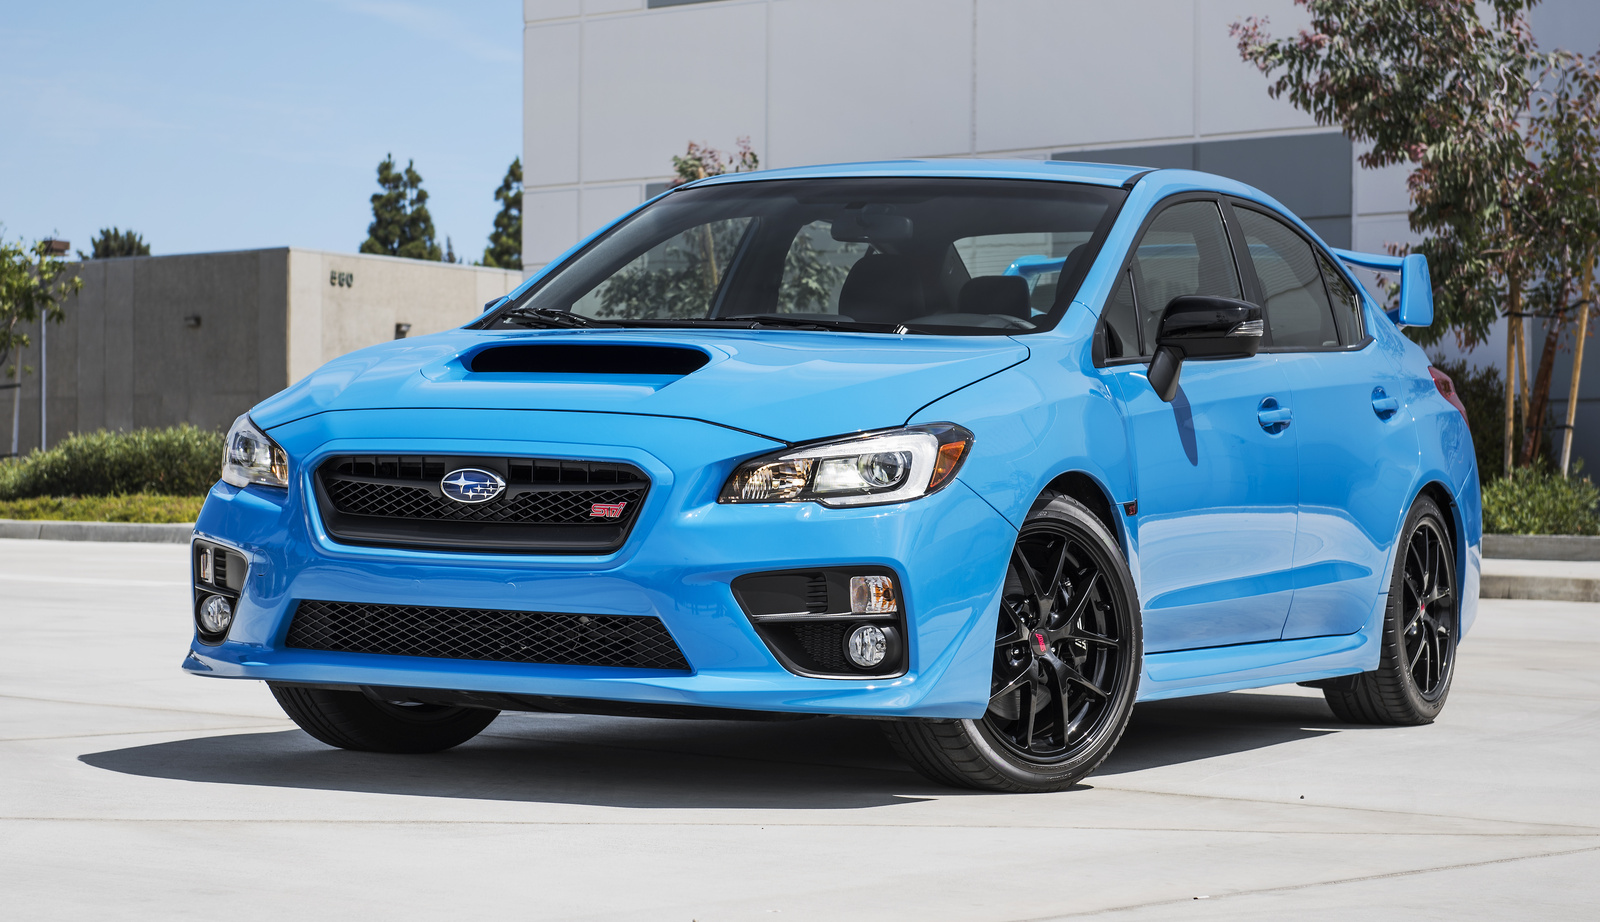 Subaru Sti Specs All New Car Release And Reviews Blue With White Rims 2016 Wrx Review Cargurus